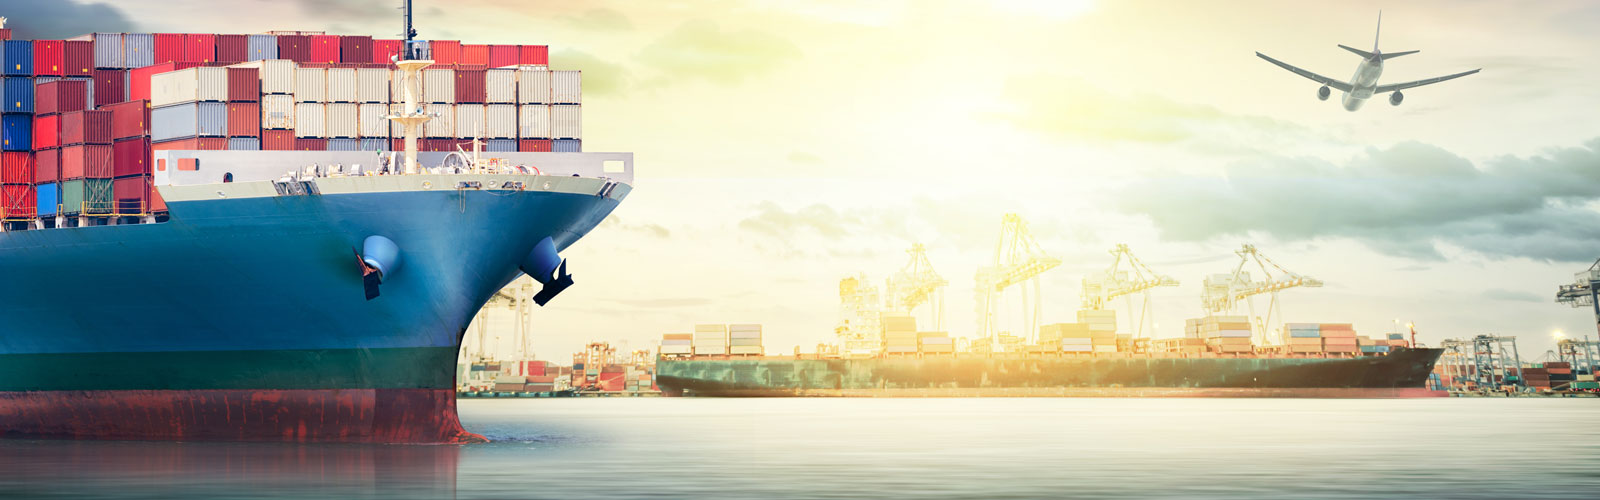 Advantages of Outsourcing Your Logistics Needs